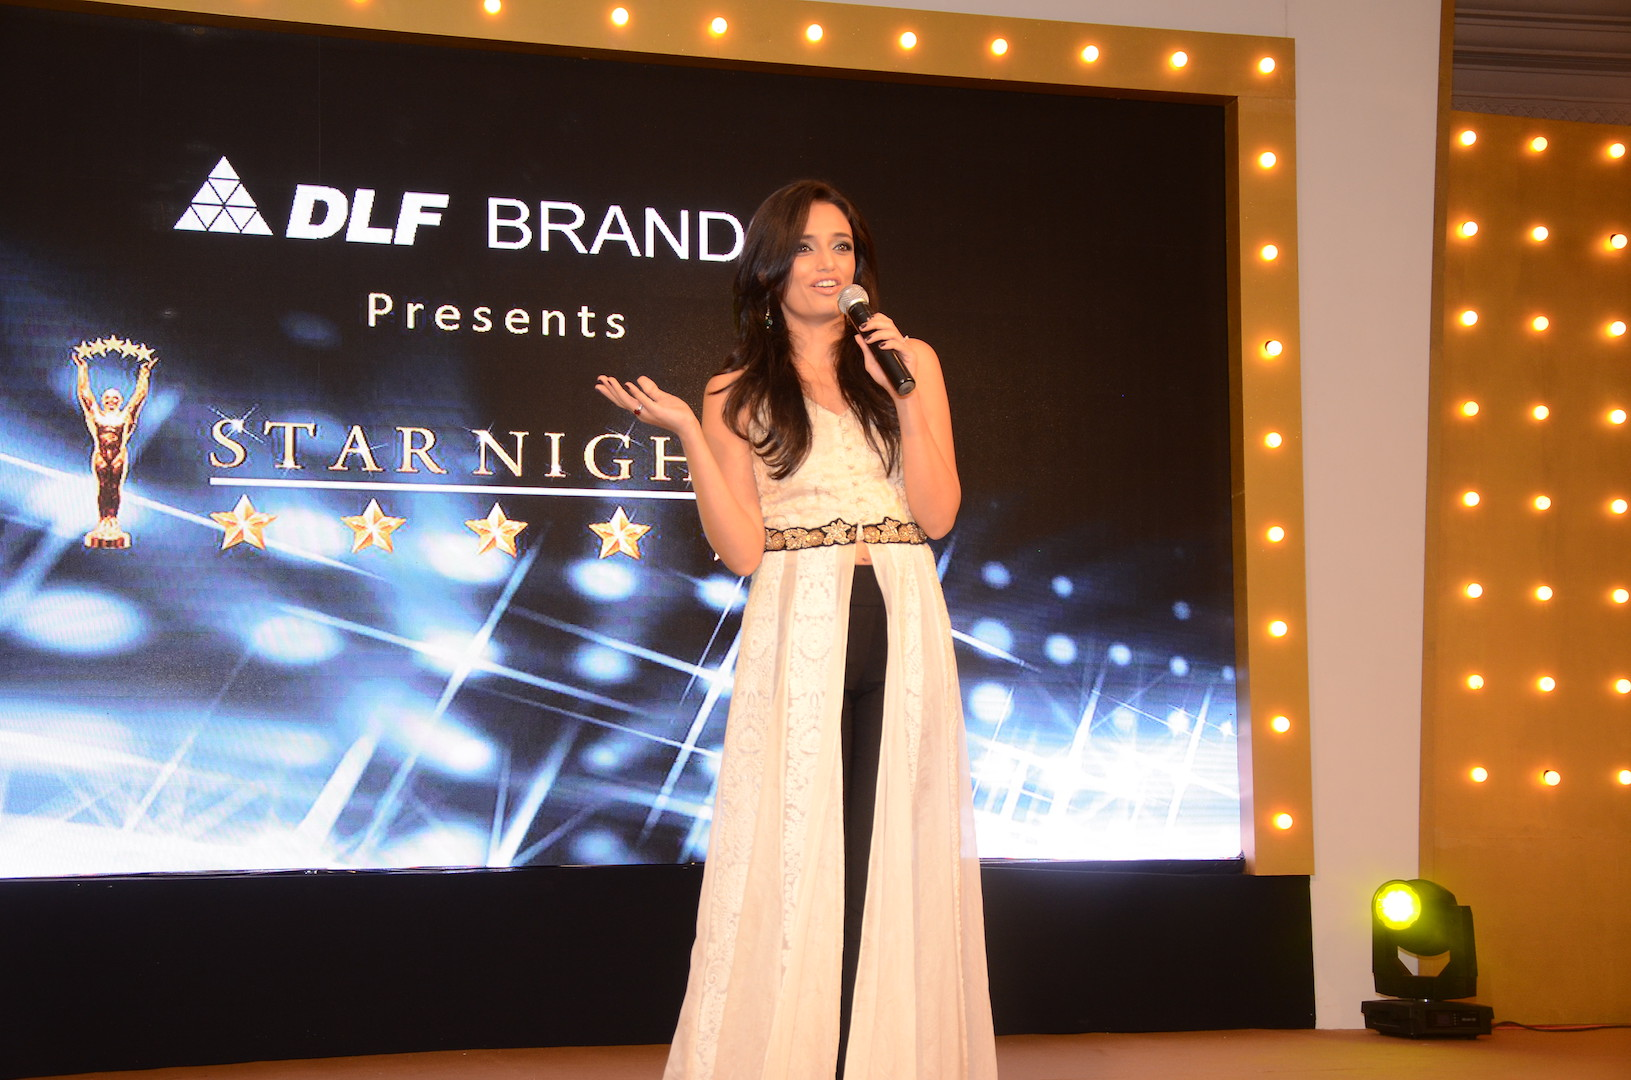 Dlf brands - Employee Awards